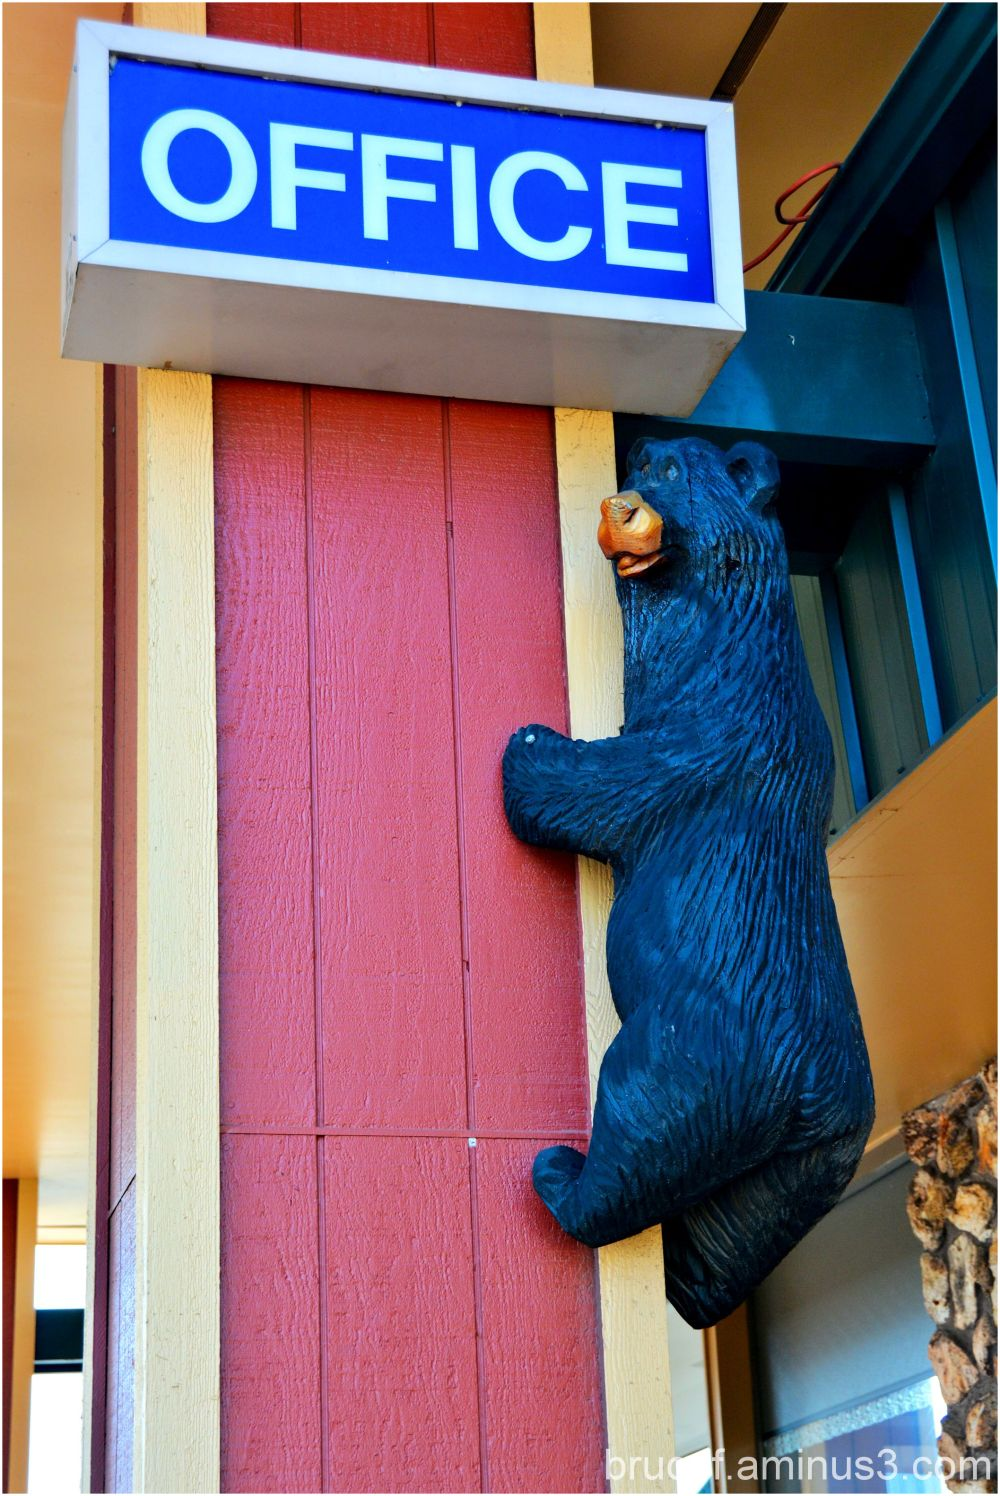 Black Bear Inn and He Is